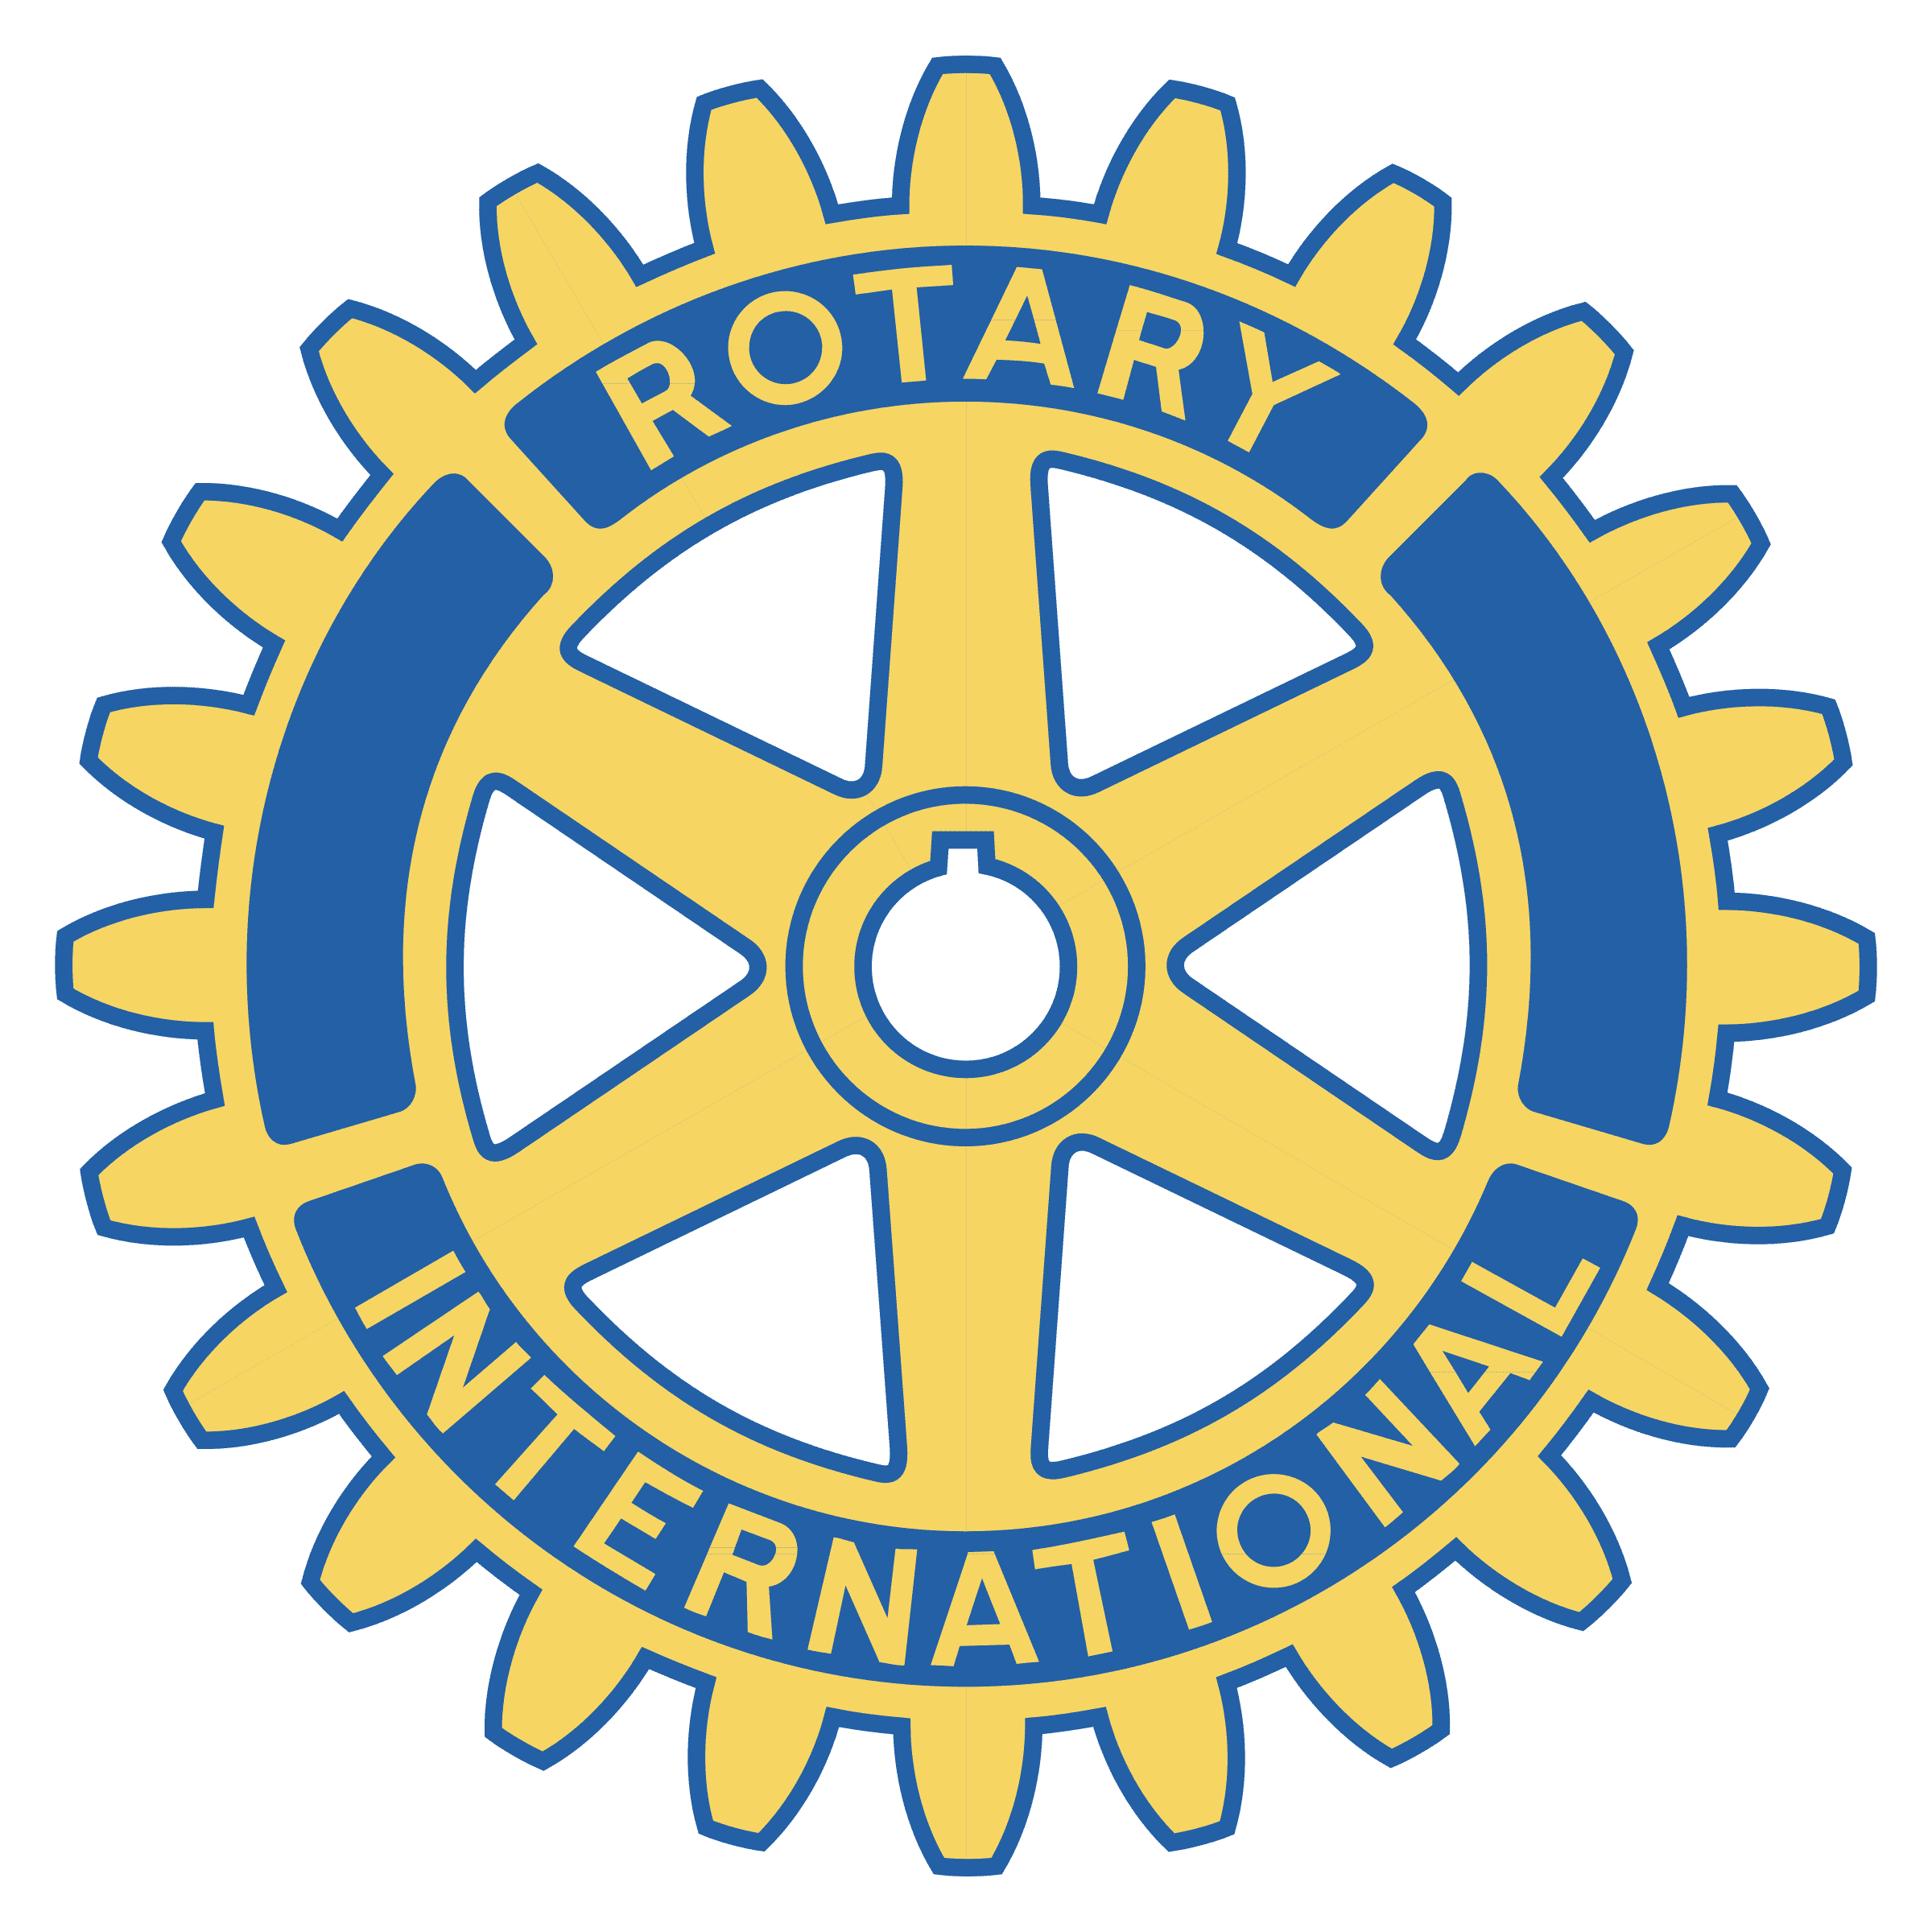 rotary-international-6-logo-png-transparent